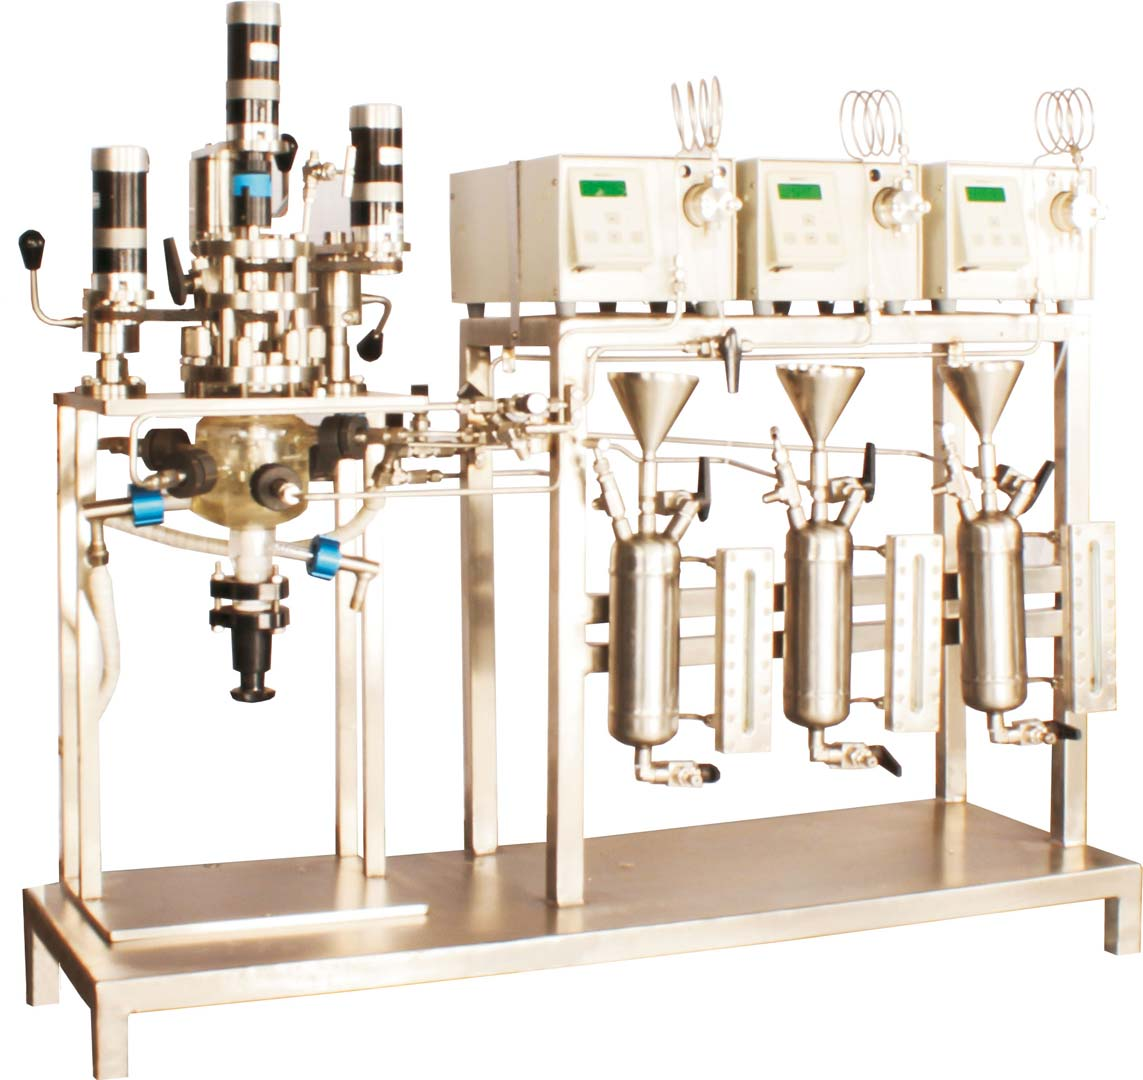 Phase transfer catalyst continuous reactor system with simultaneous 3 different impeller speeds at 3 different levels